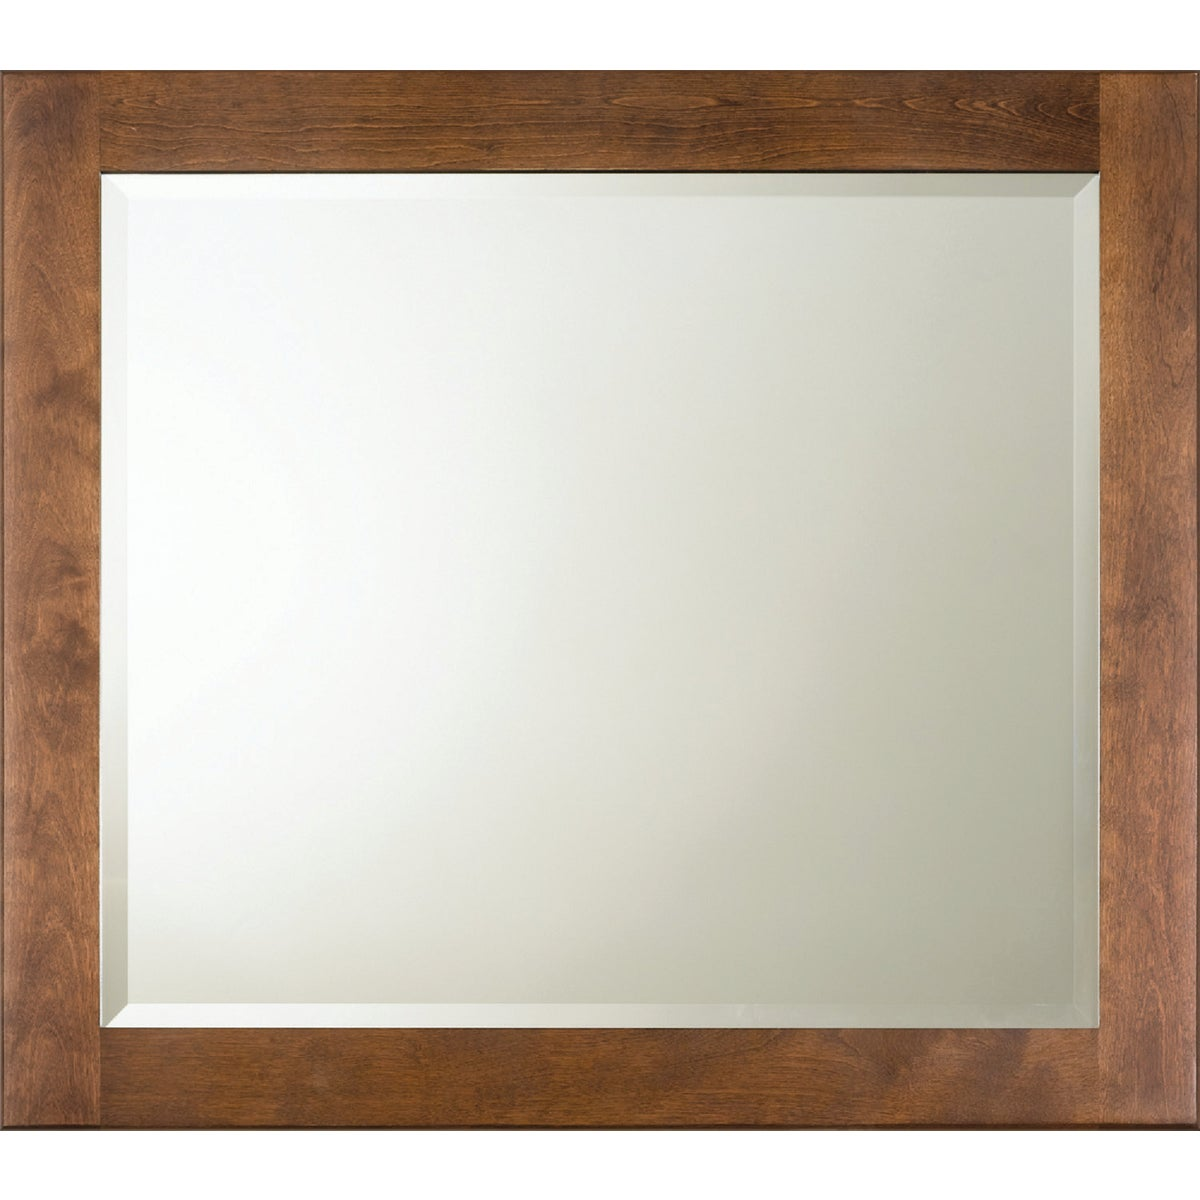 "34"" OSAGE BRINDLE MIRROR - S/OBB-FM3430 by Bertch Cab Mfg Inc"